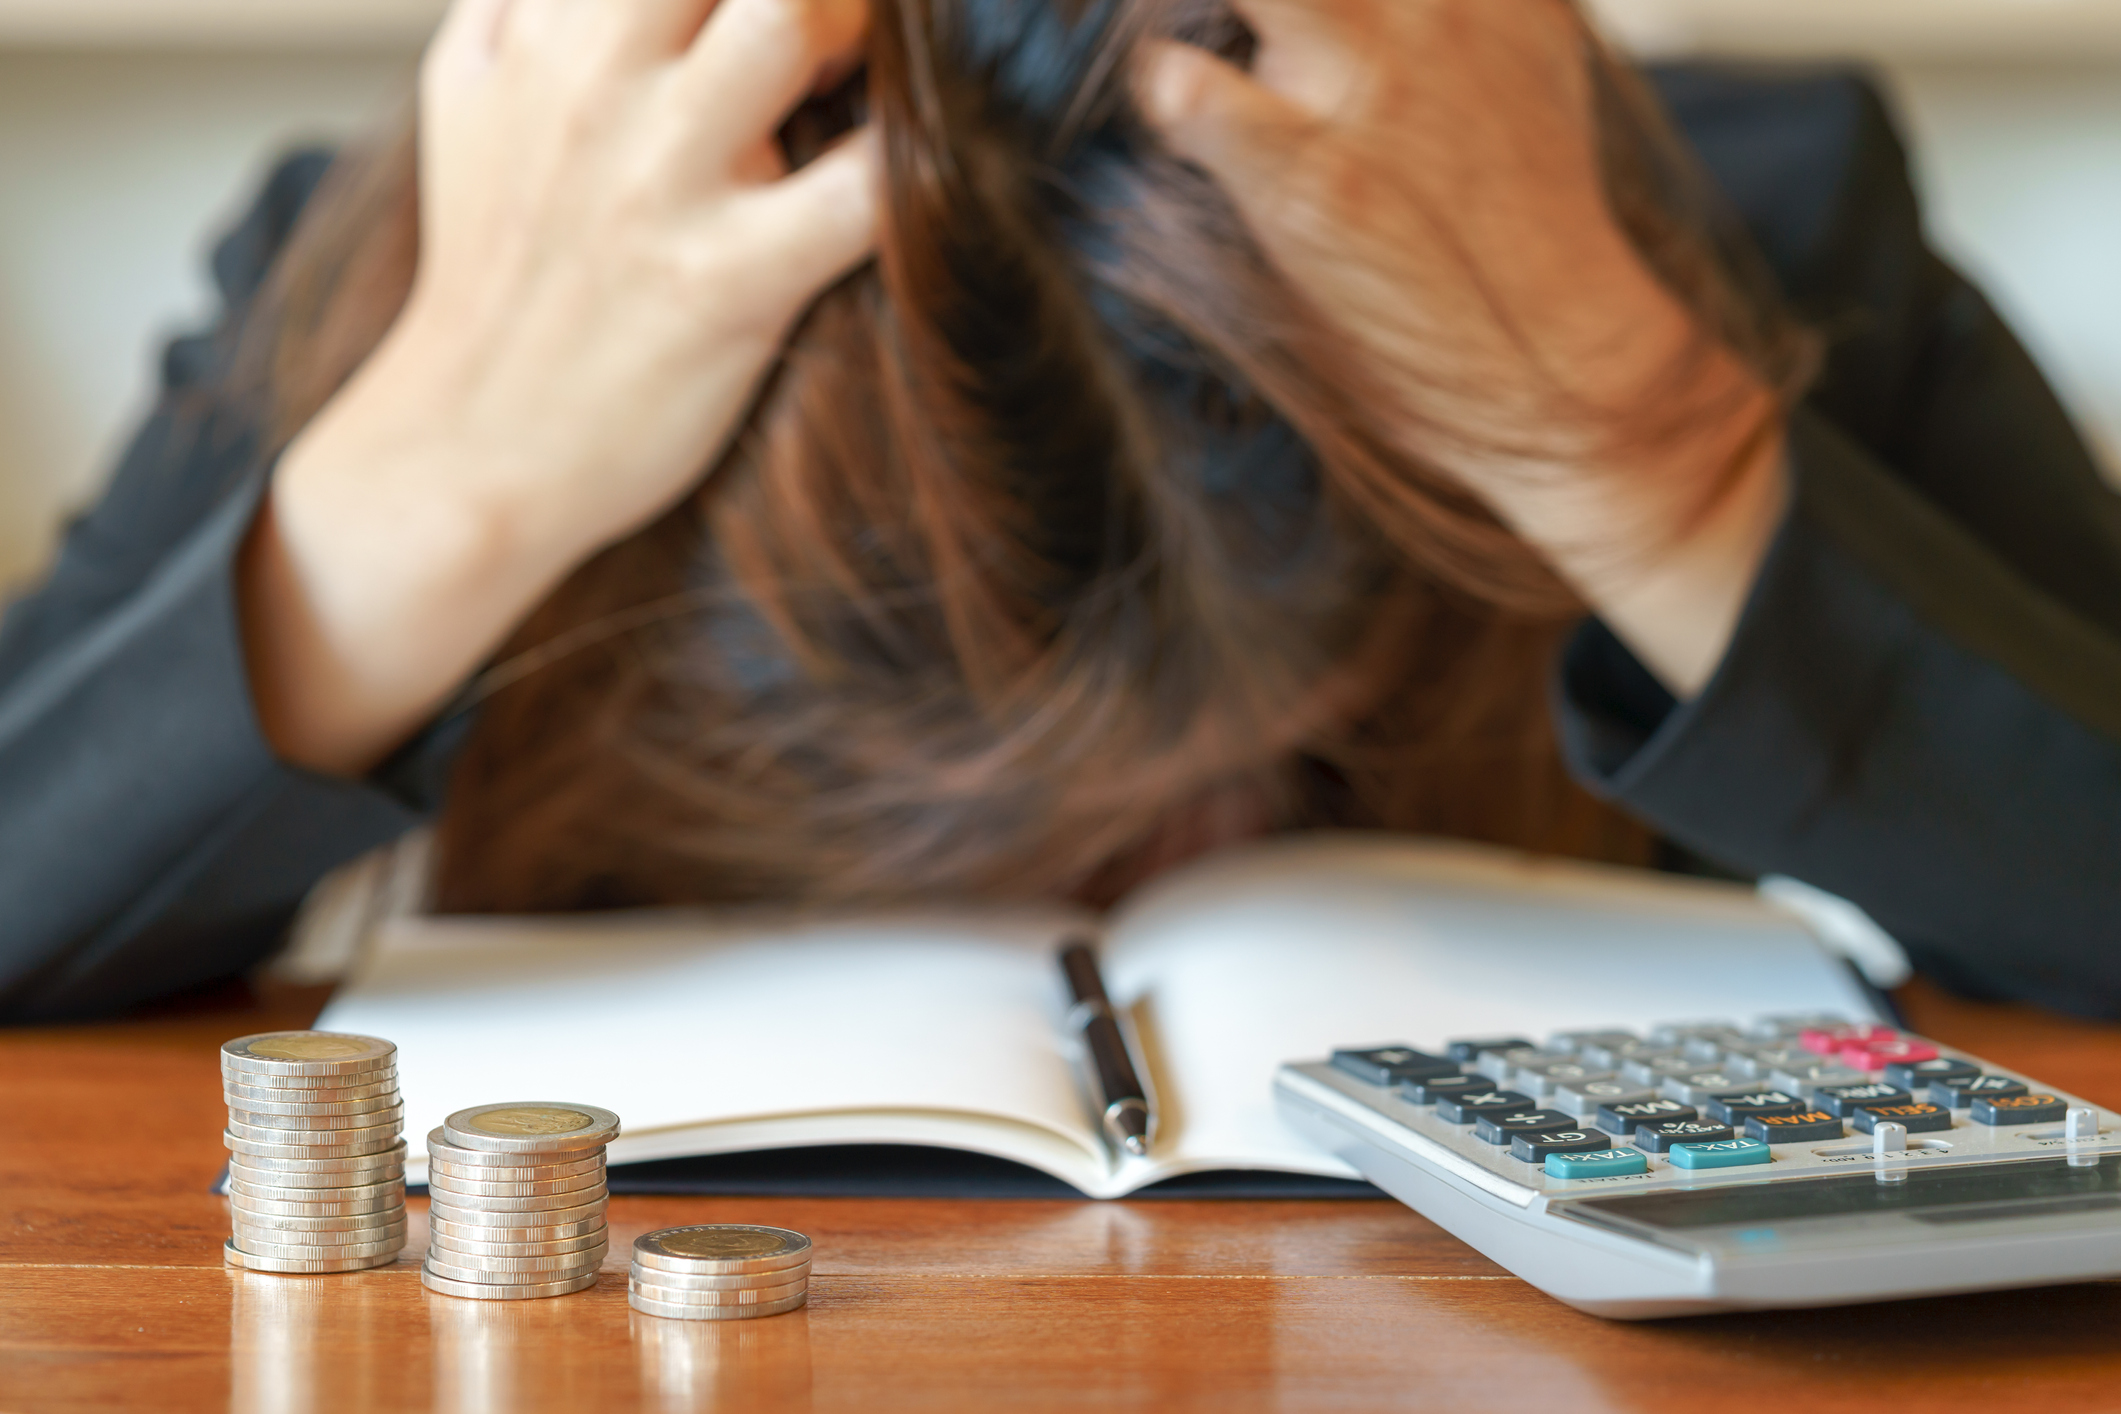 Woman having a total meltdown face down on desk and clutching hair amid calculator and stacks of coins.